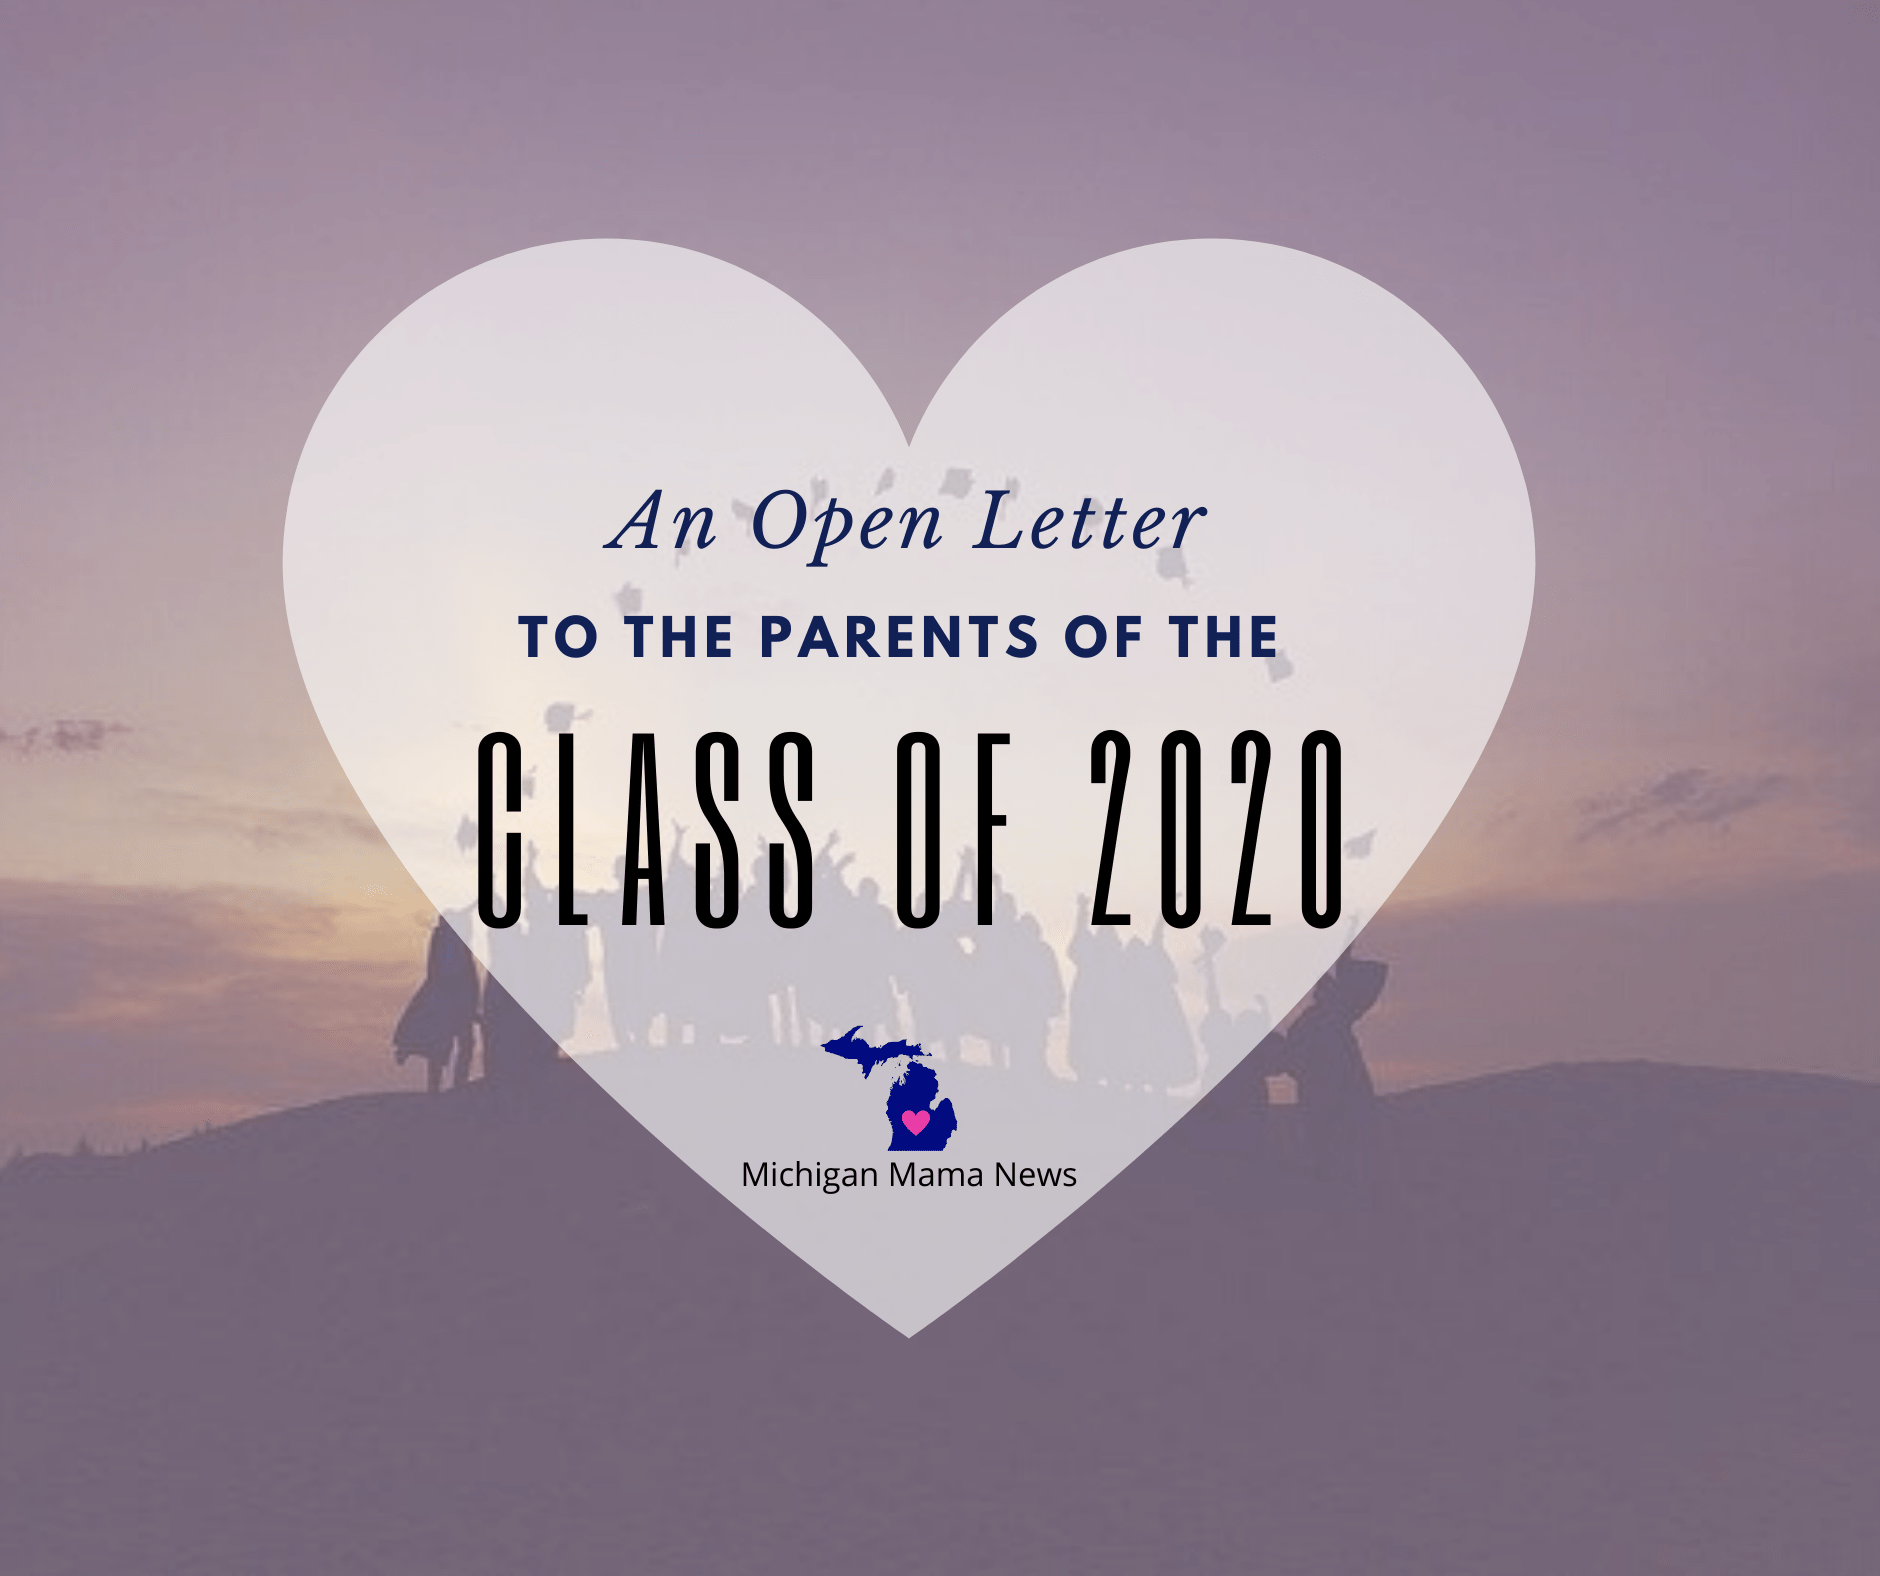 An Open Letter to the Parents of the Class of 2020